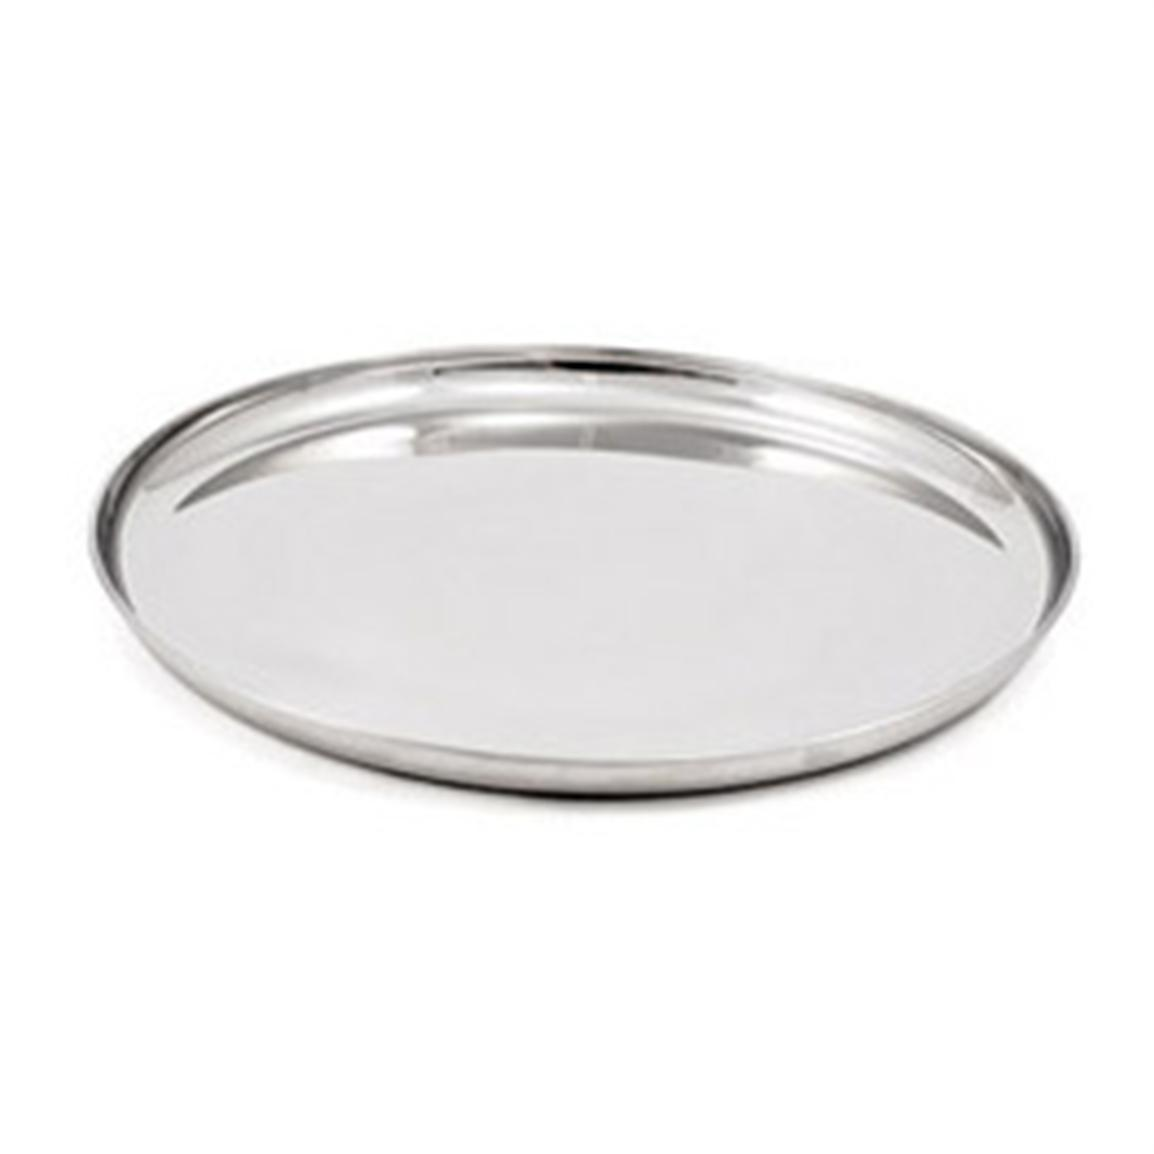 GSI Outdoors Glacier Stainless Steel Dinner Plate